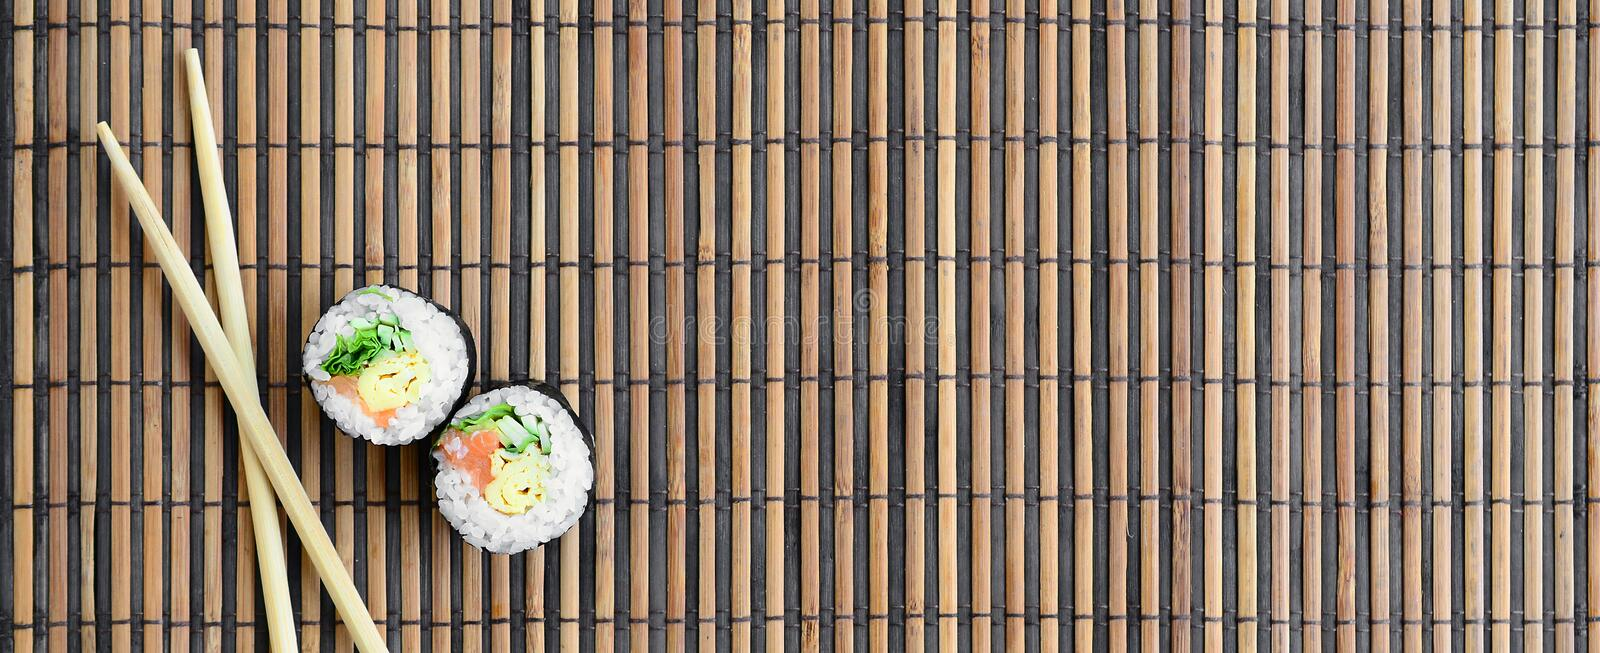 Sushi rolls and wooden chopsticks lie on a bamboo straw serwing mat. Traditional Asian food. Top view. Flat lay minimalism shot. With copy space stock photos